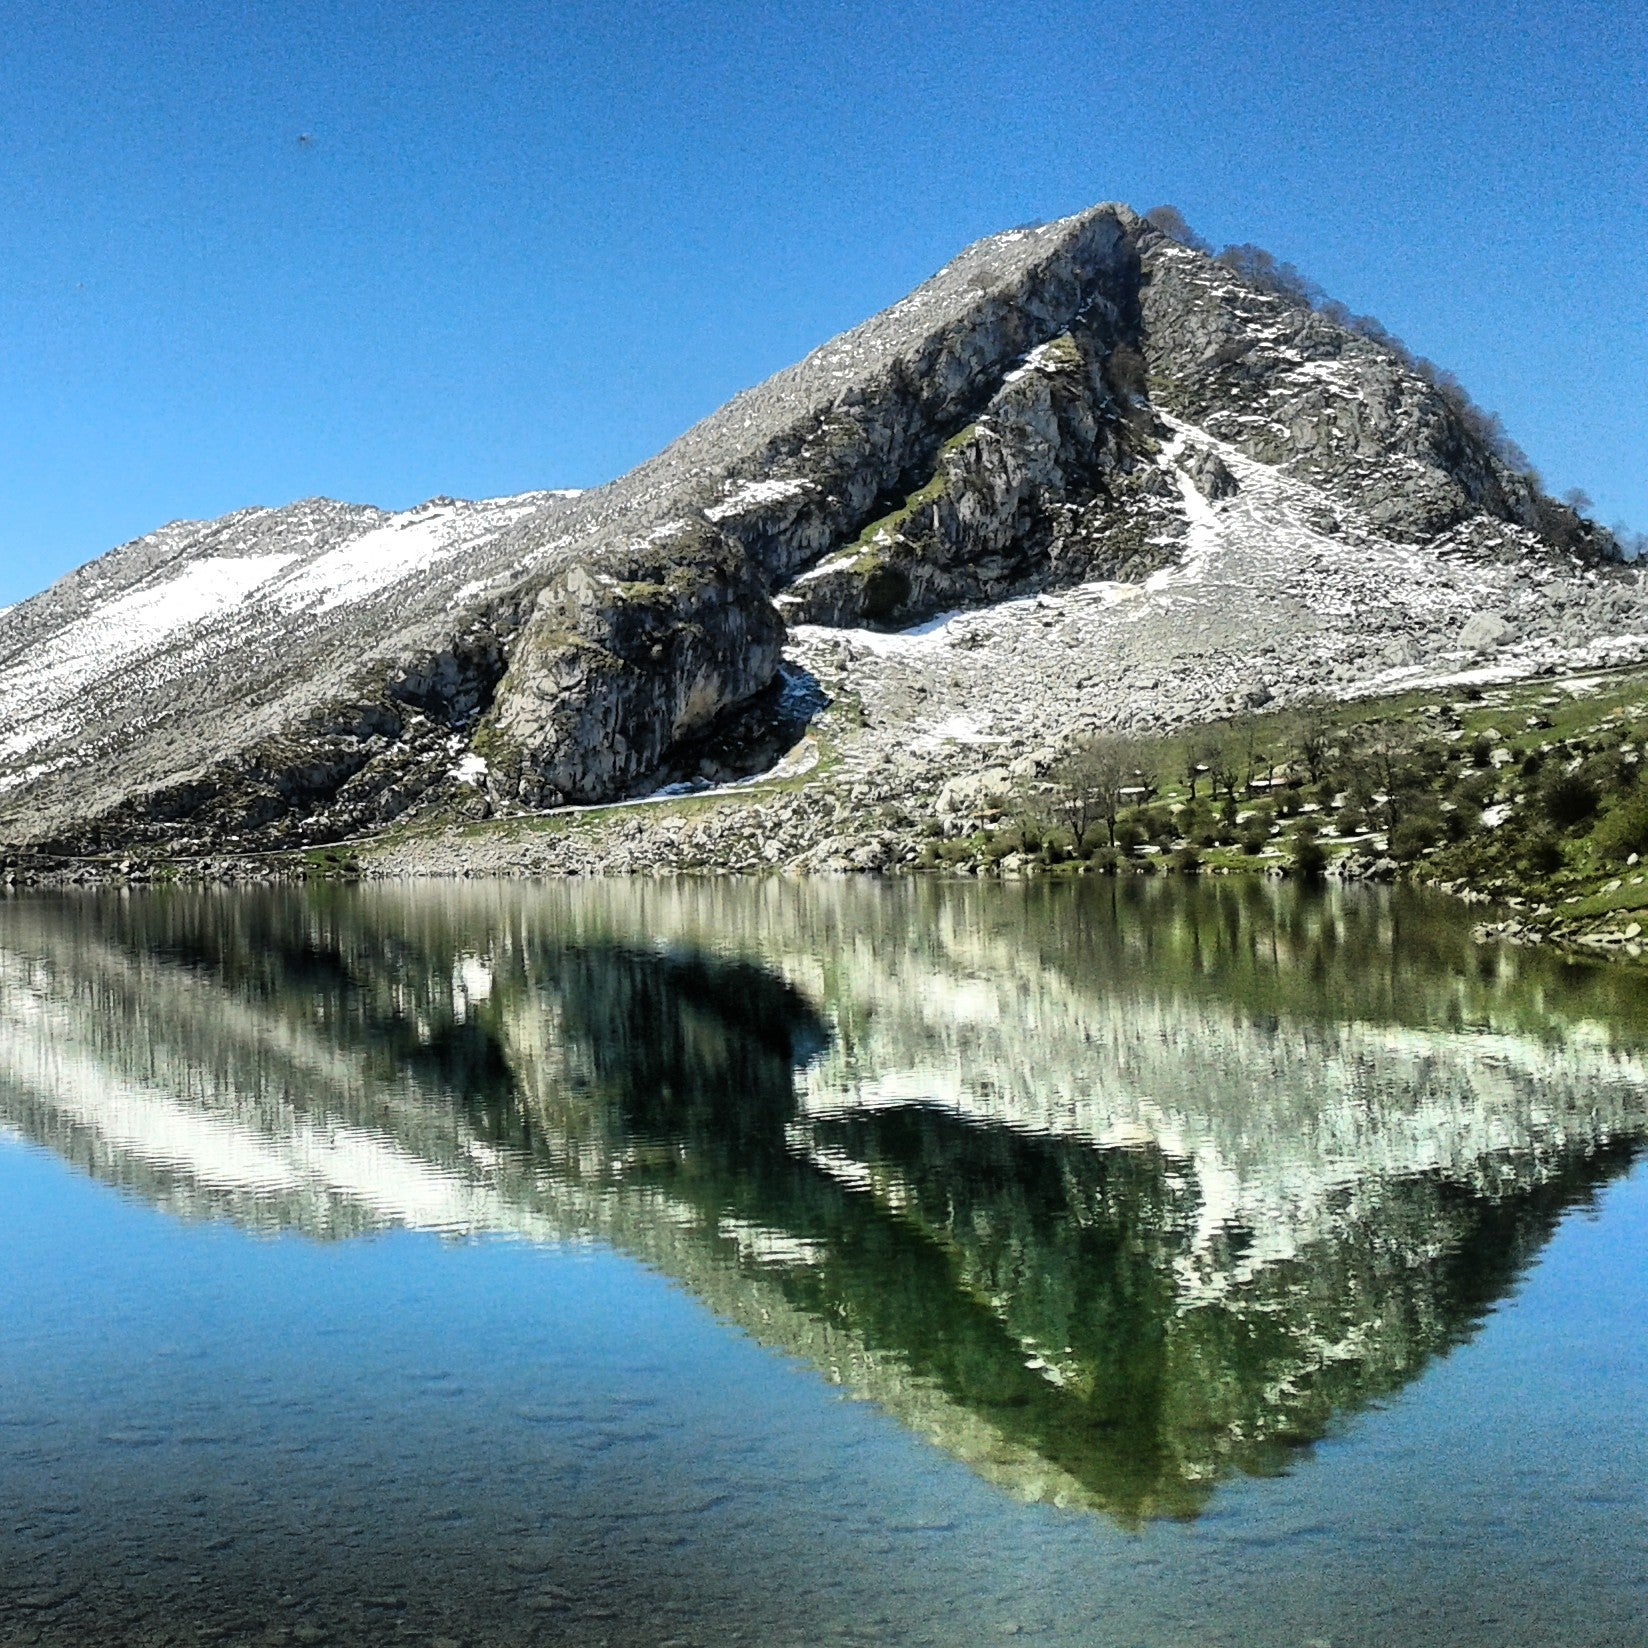 Mountain Range in The Lakes of Covadonga - Enol and Ercina lakes